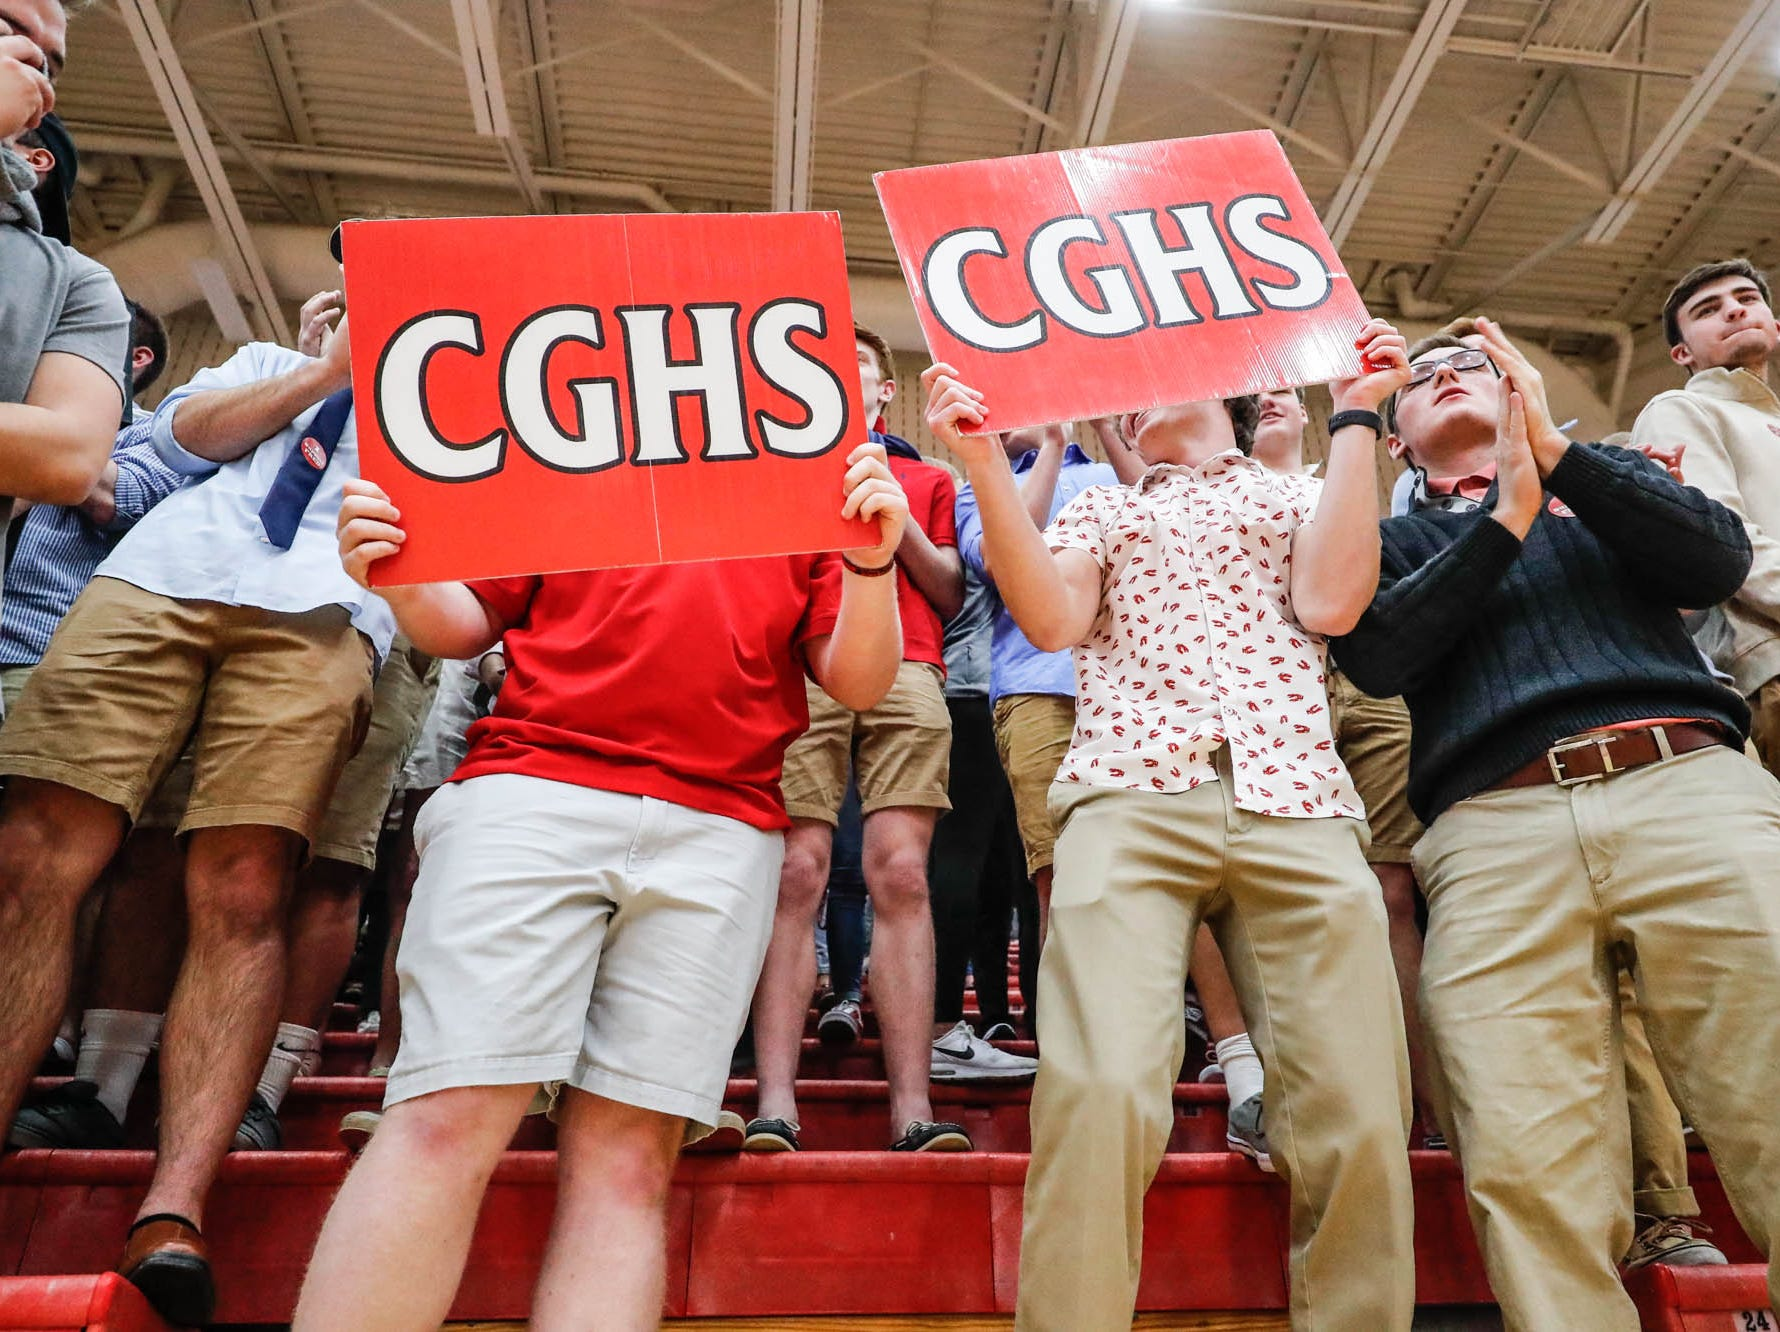 Students hold cheer signs during a game between Center Grove High School and Carmel High School, held at Center Grove on on Friday, Jan. 4, 2019.